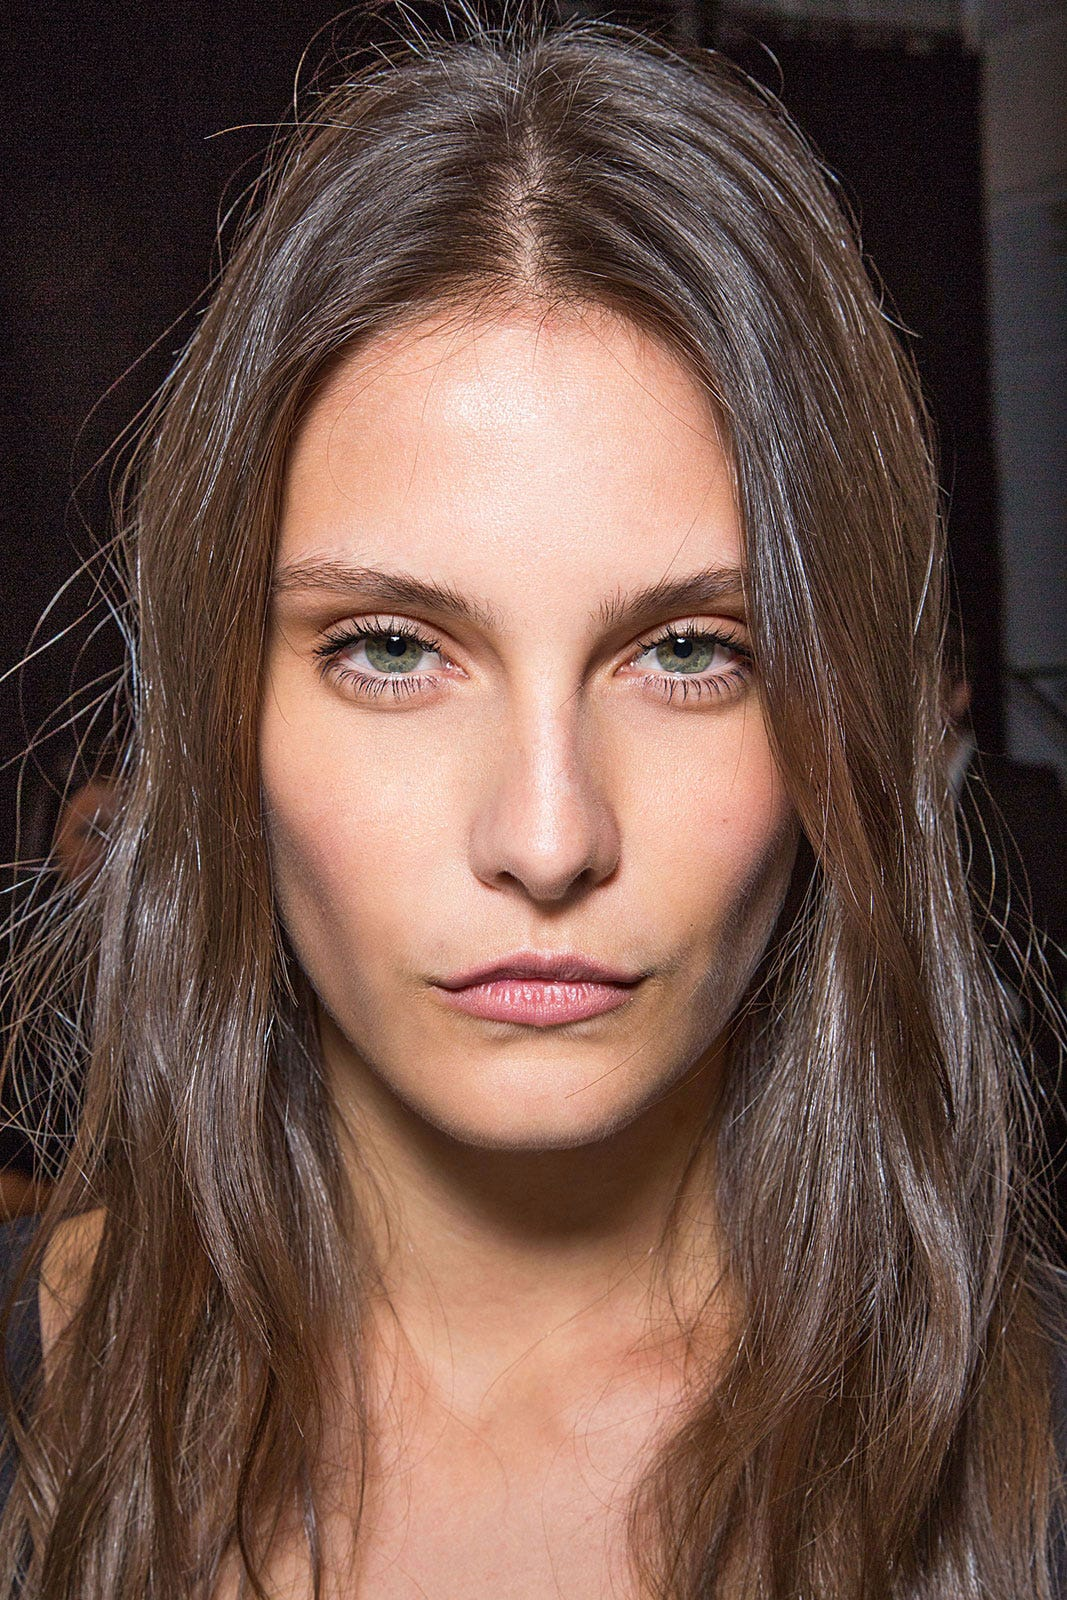 Best Eyebrow Shapes Different Face Types Grooming Tips